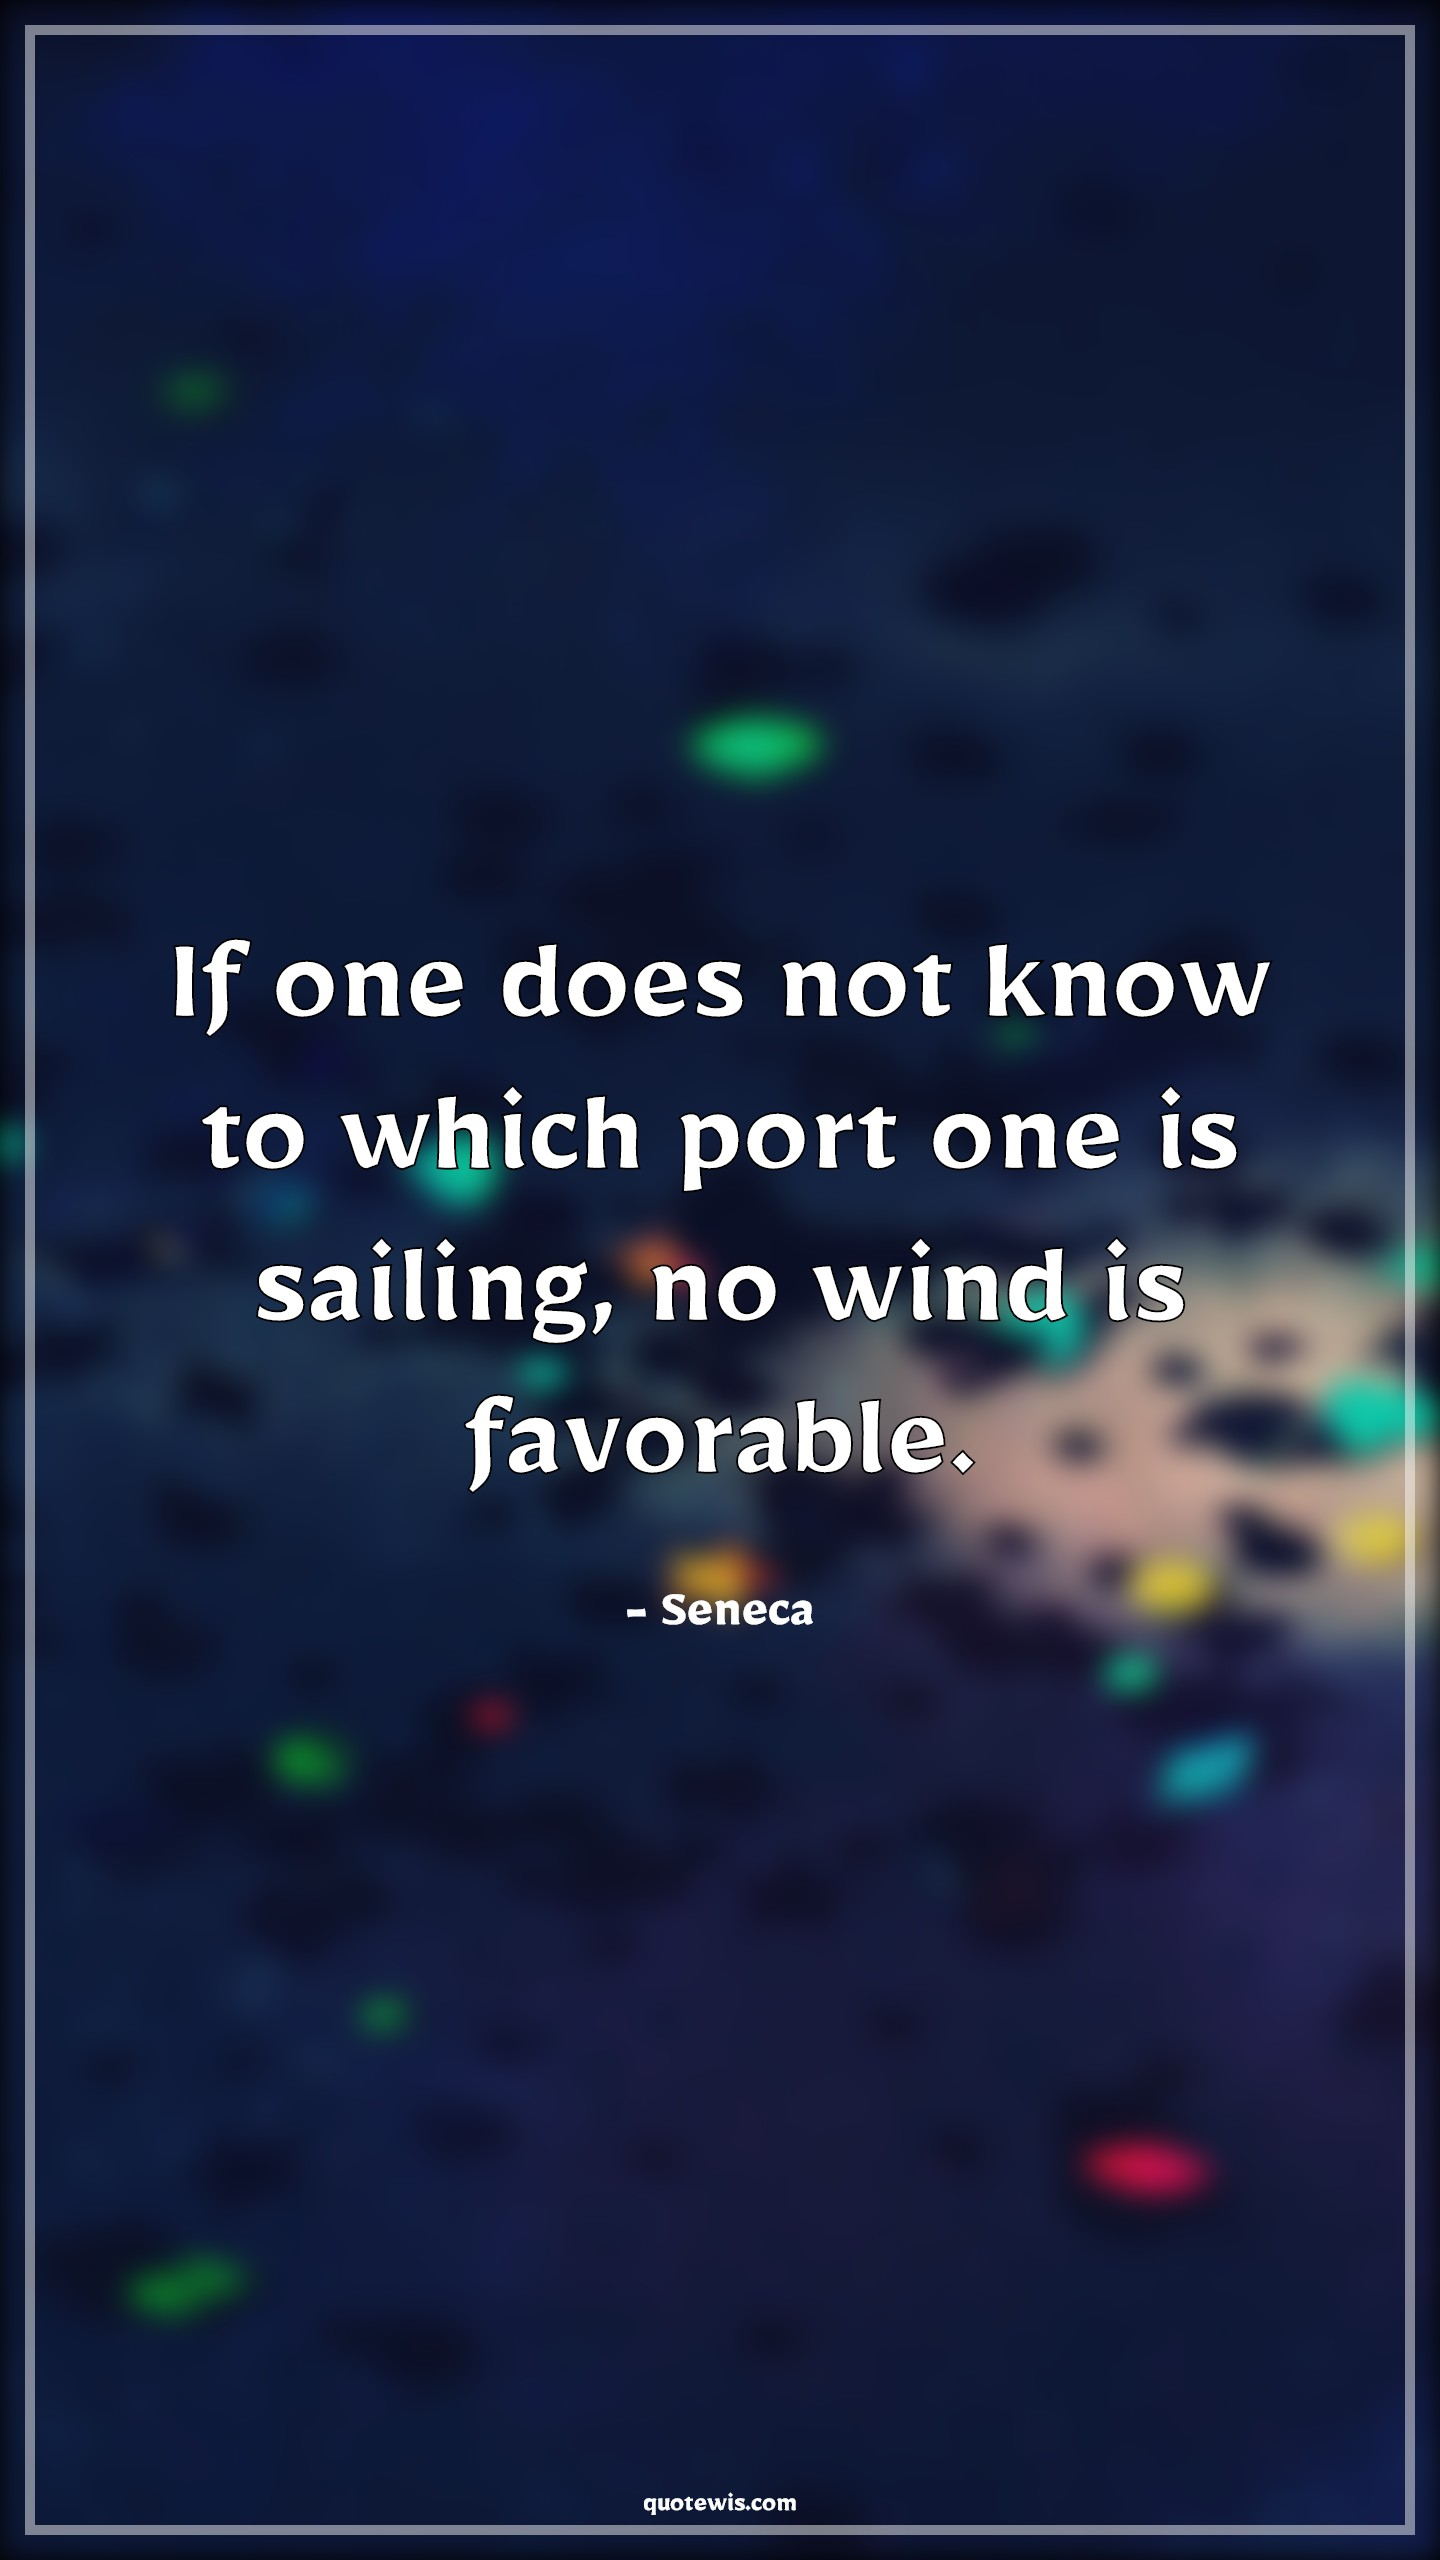 If one does not know to which port one is sailing, no wind is favorable.